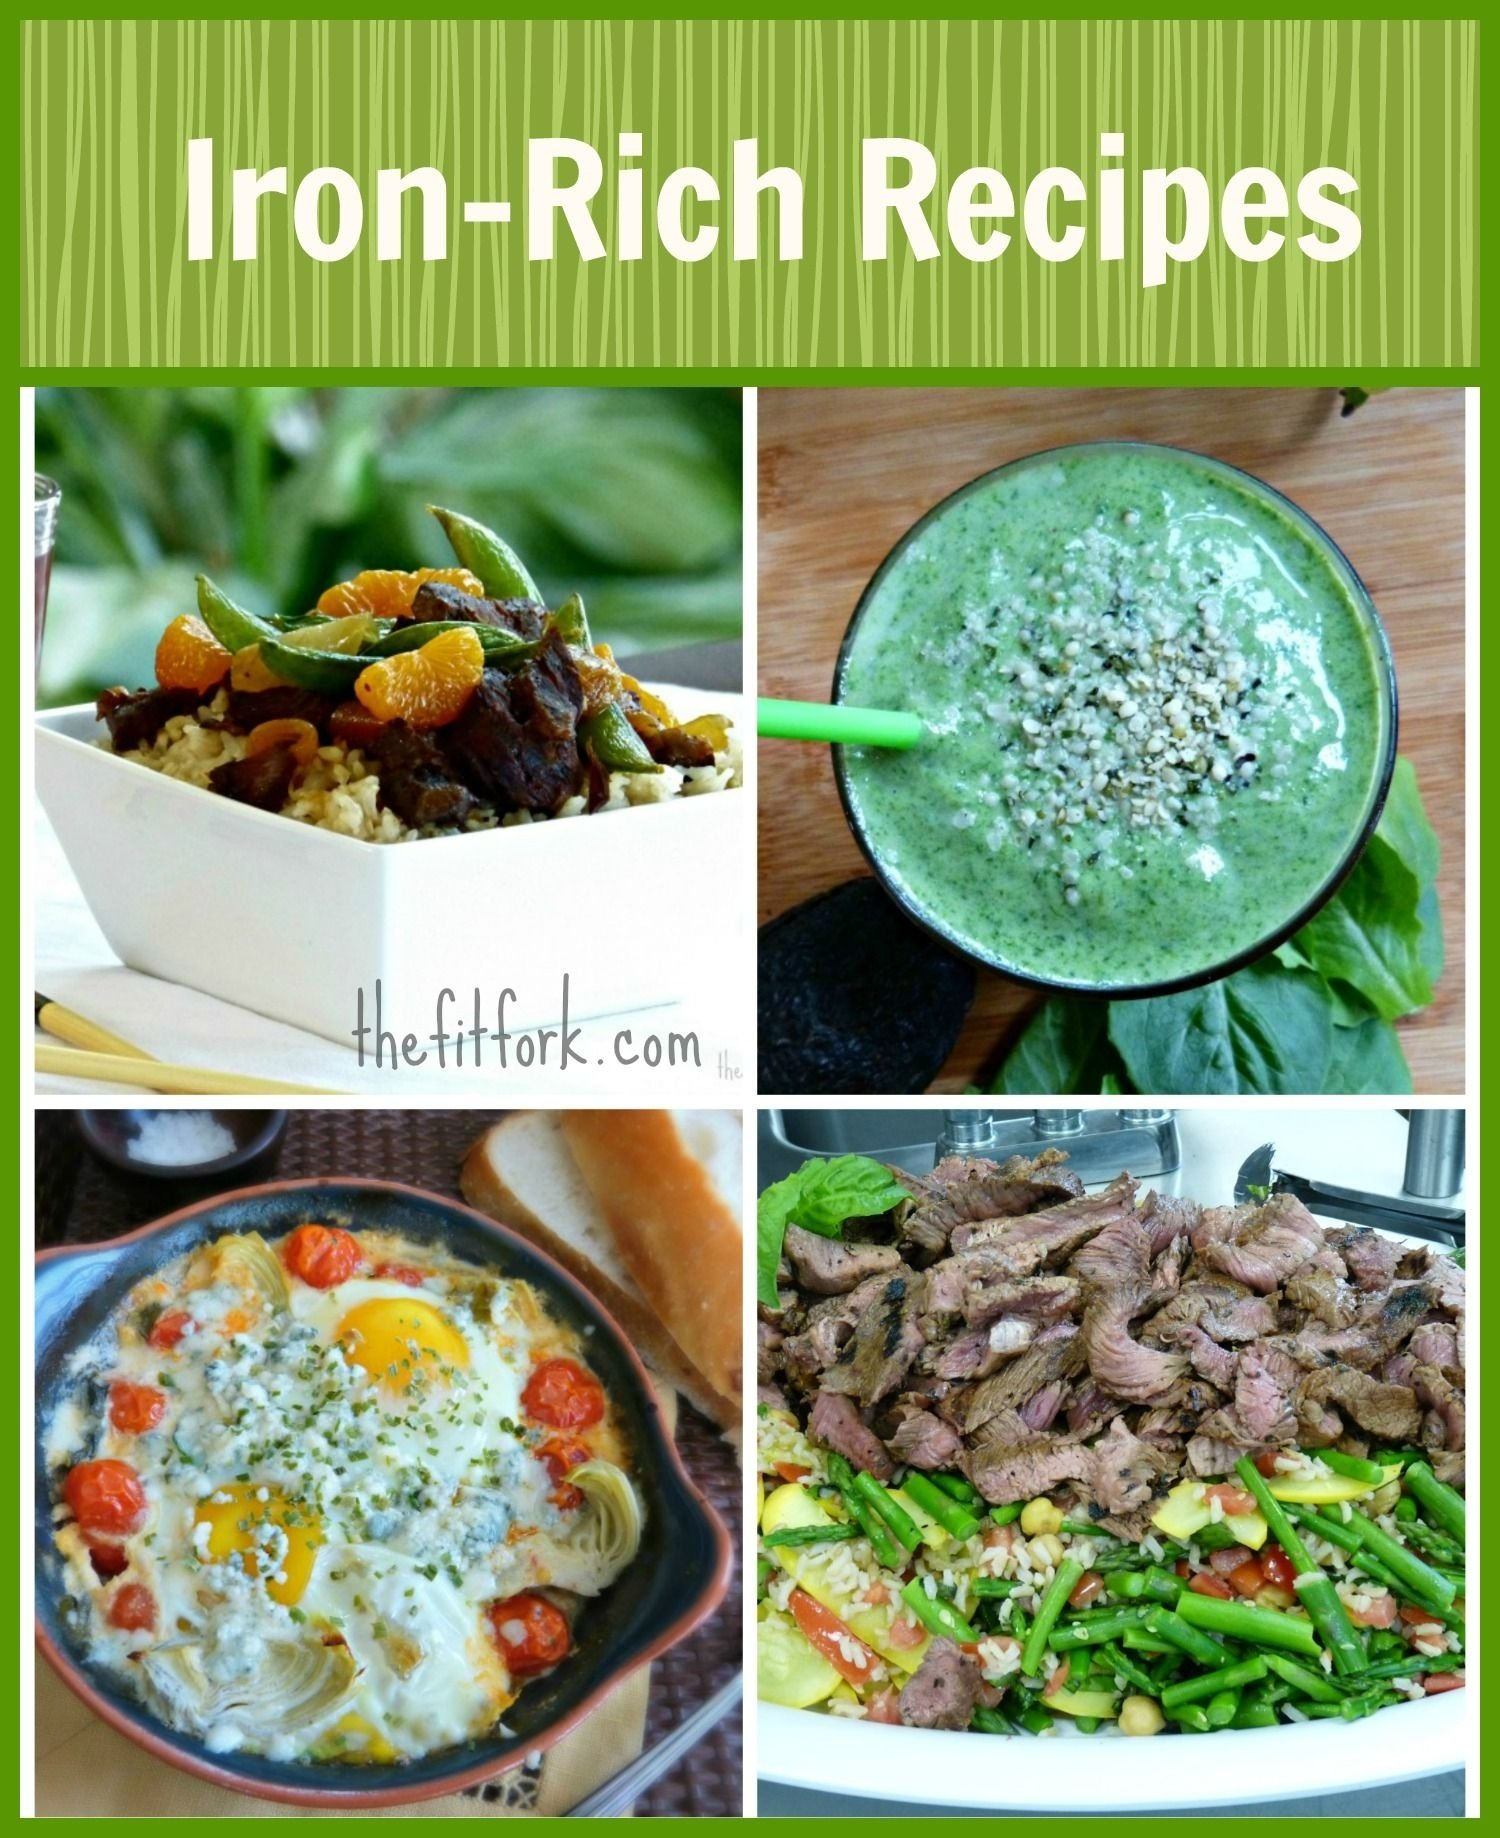 10 Nice Dinner Ideas For Pregnant Women anemia in runners healthy iron rich recipes iron rich recipes 2020